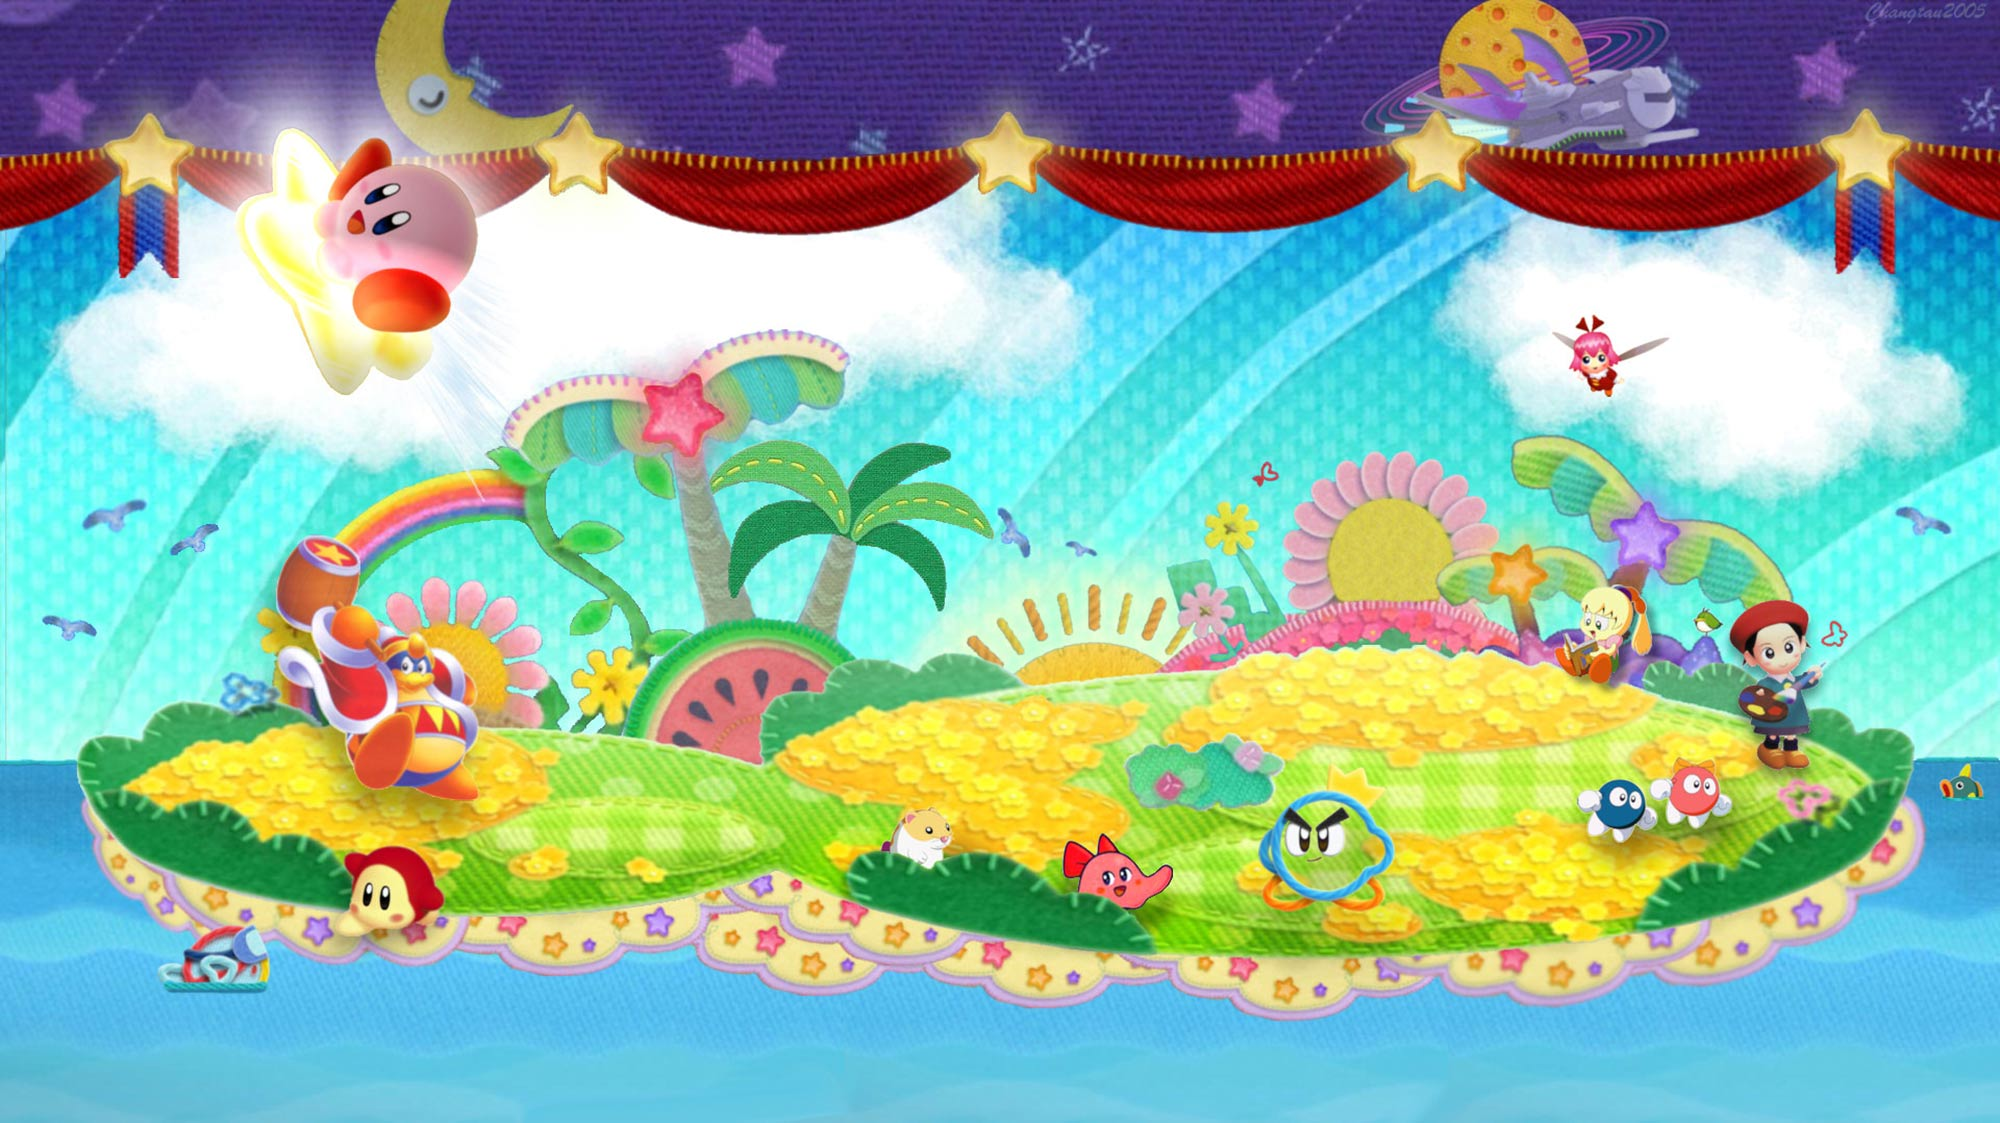 Image   Wiki background Kirby Wiki FANDOM powered by Wikia 2000x1123